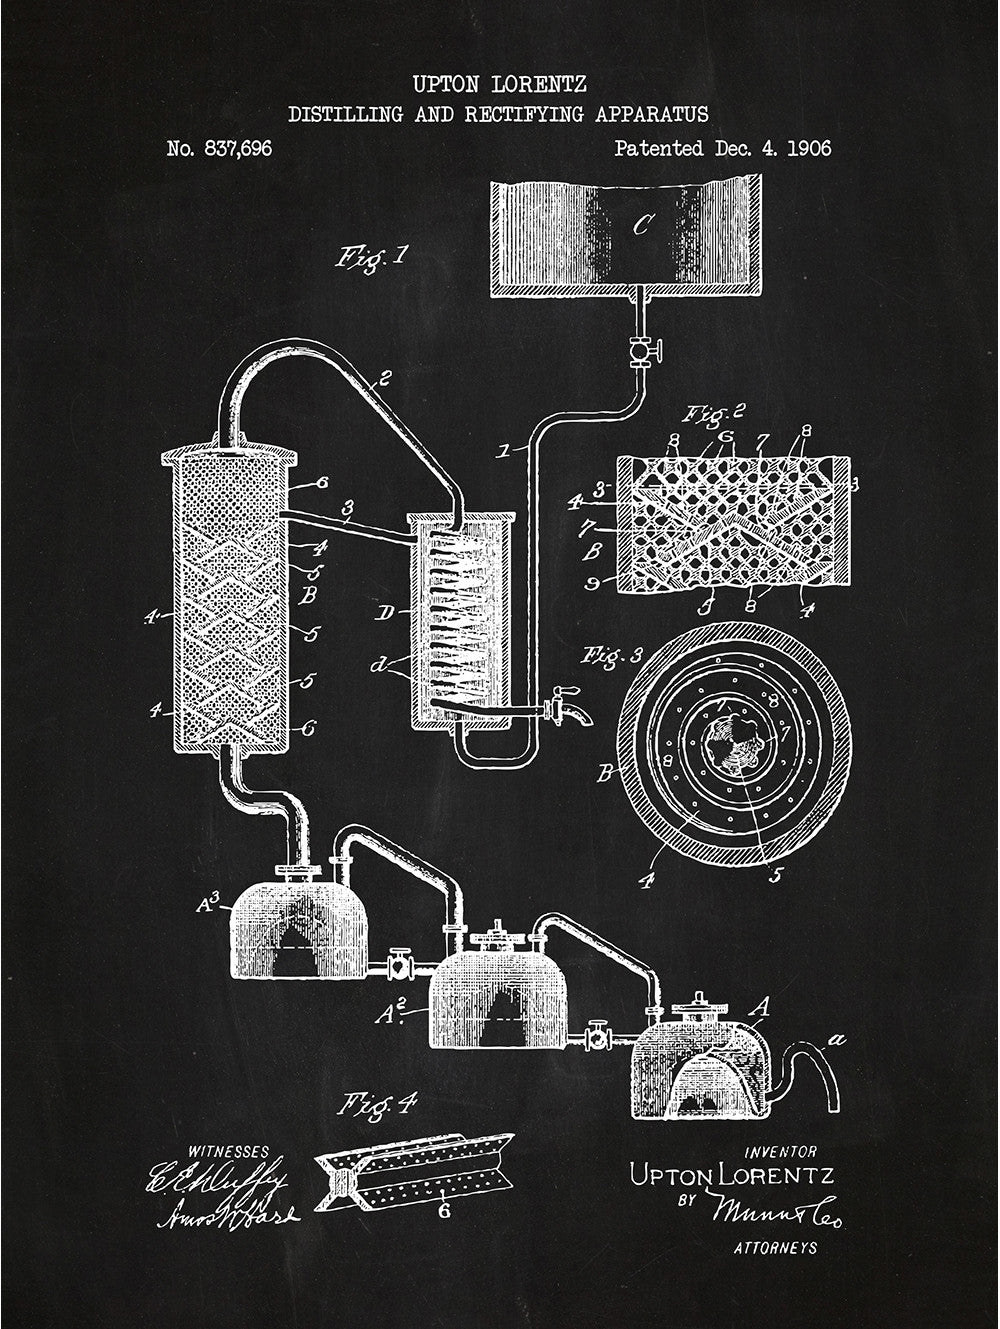 Distilling and Rectifying Apparatus - Lorentz